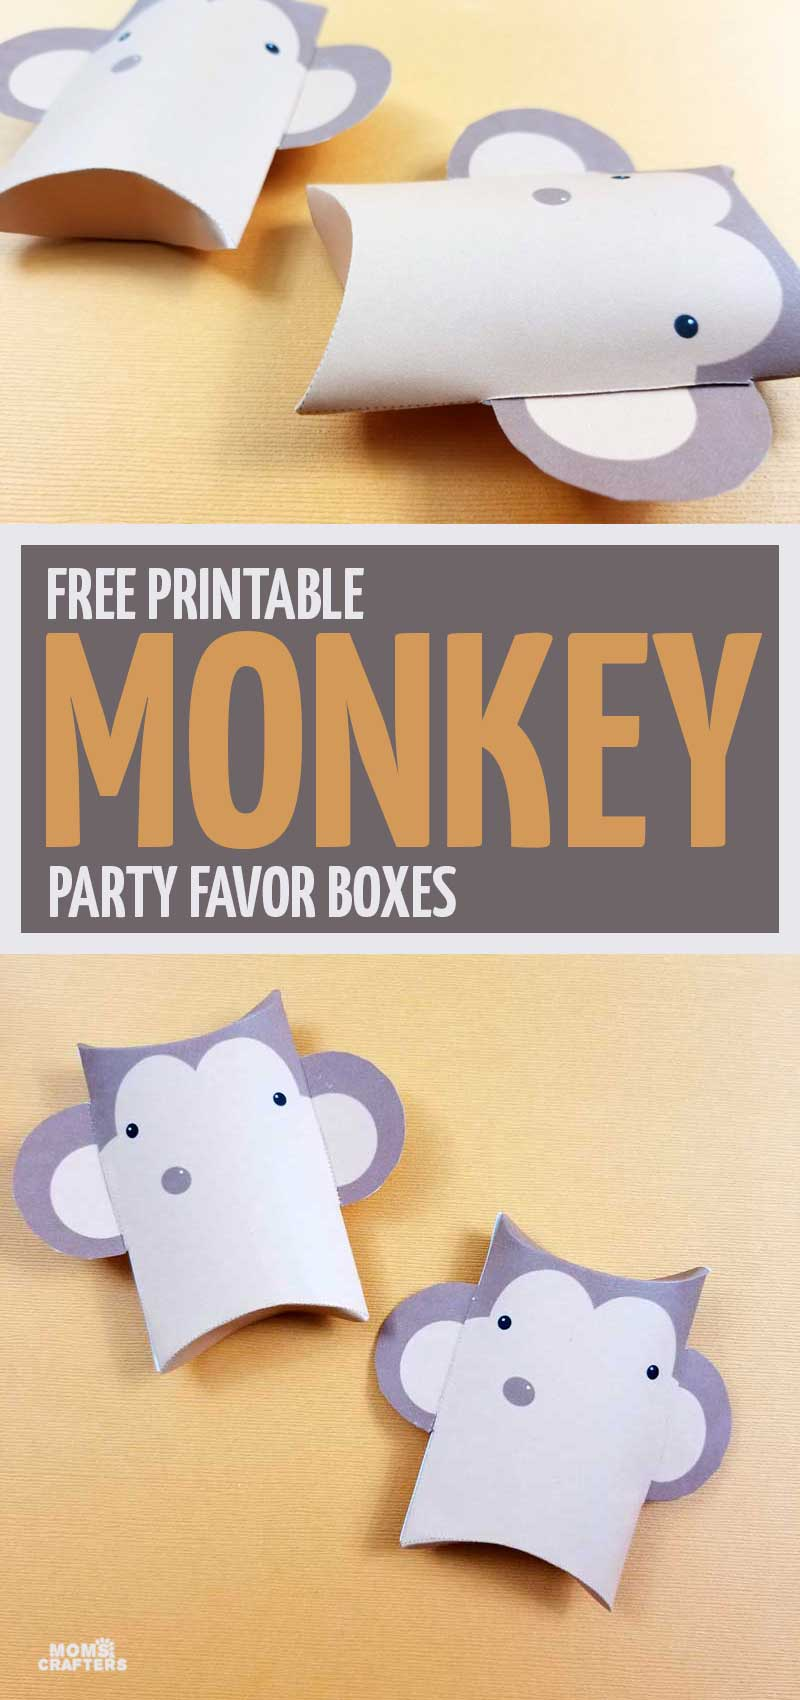 Pin it: these fun monkey party favors will be the hit of your monkey birthday parties! Click for the free printable treat boxes. More monkey birthday party ideas coming soon.